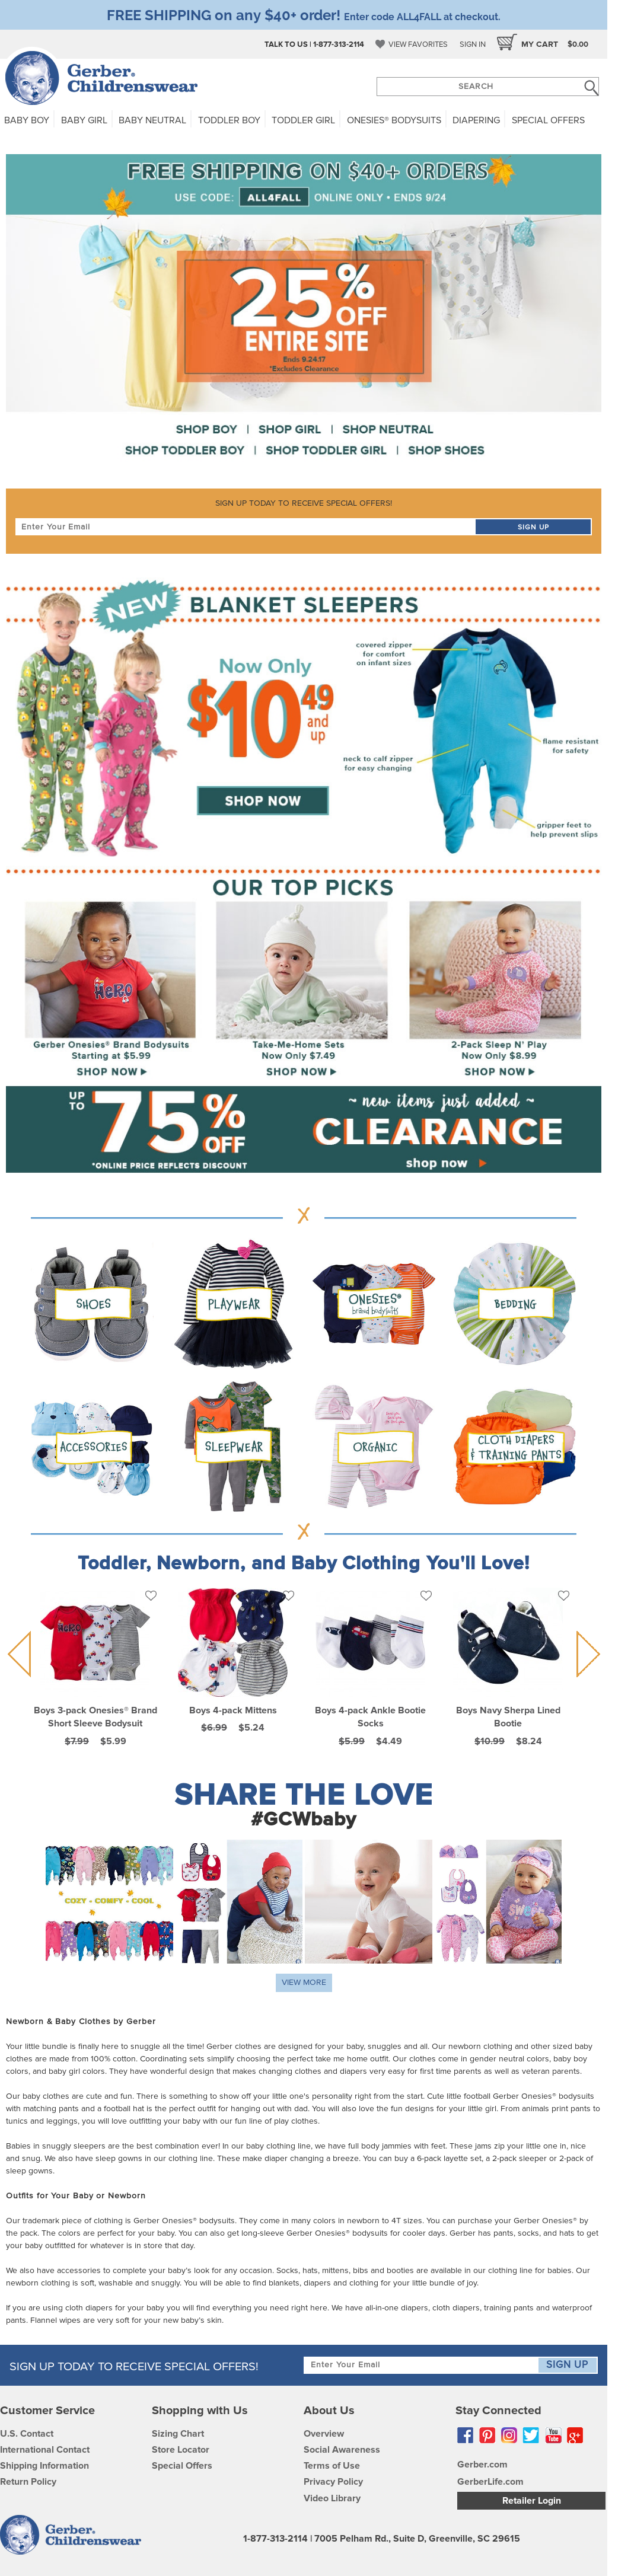 Gerber Childrenswear Competitors, Revenue and Employees - Owler ...